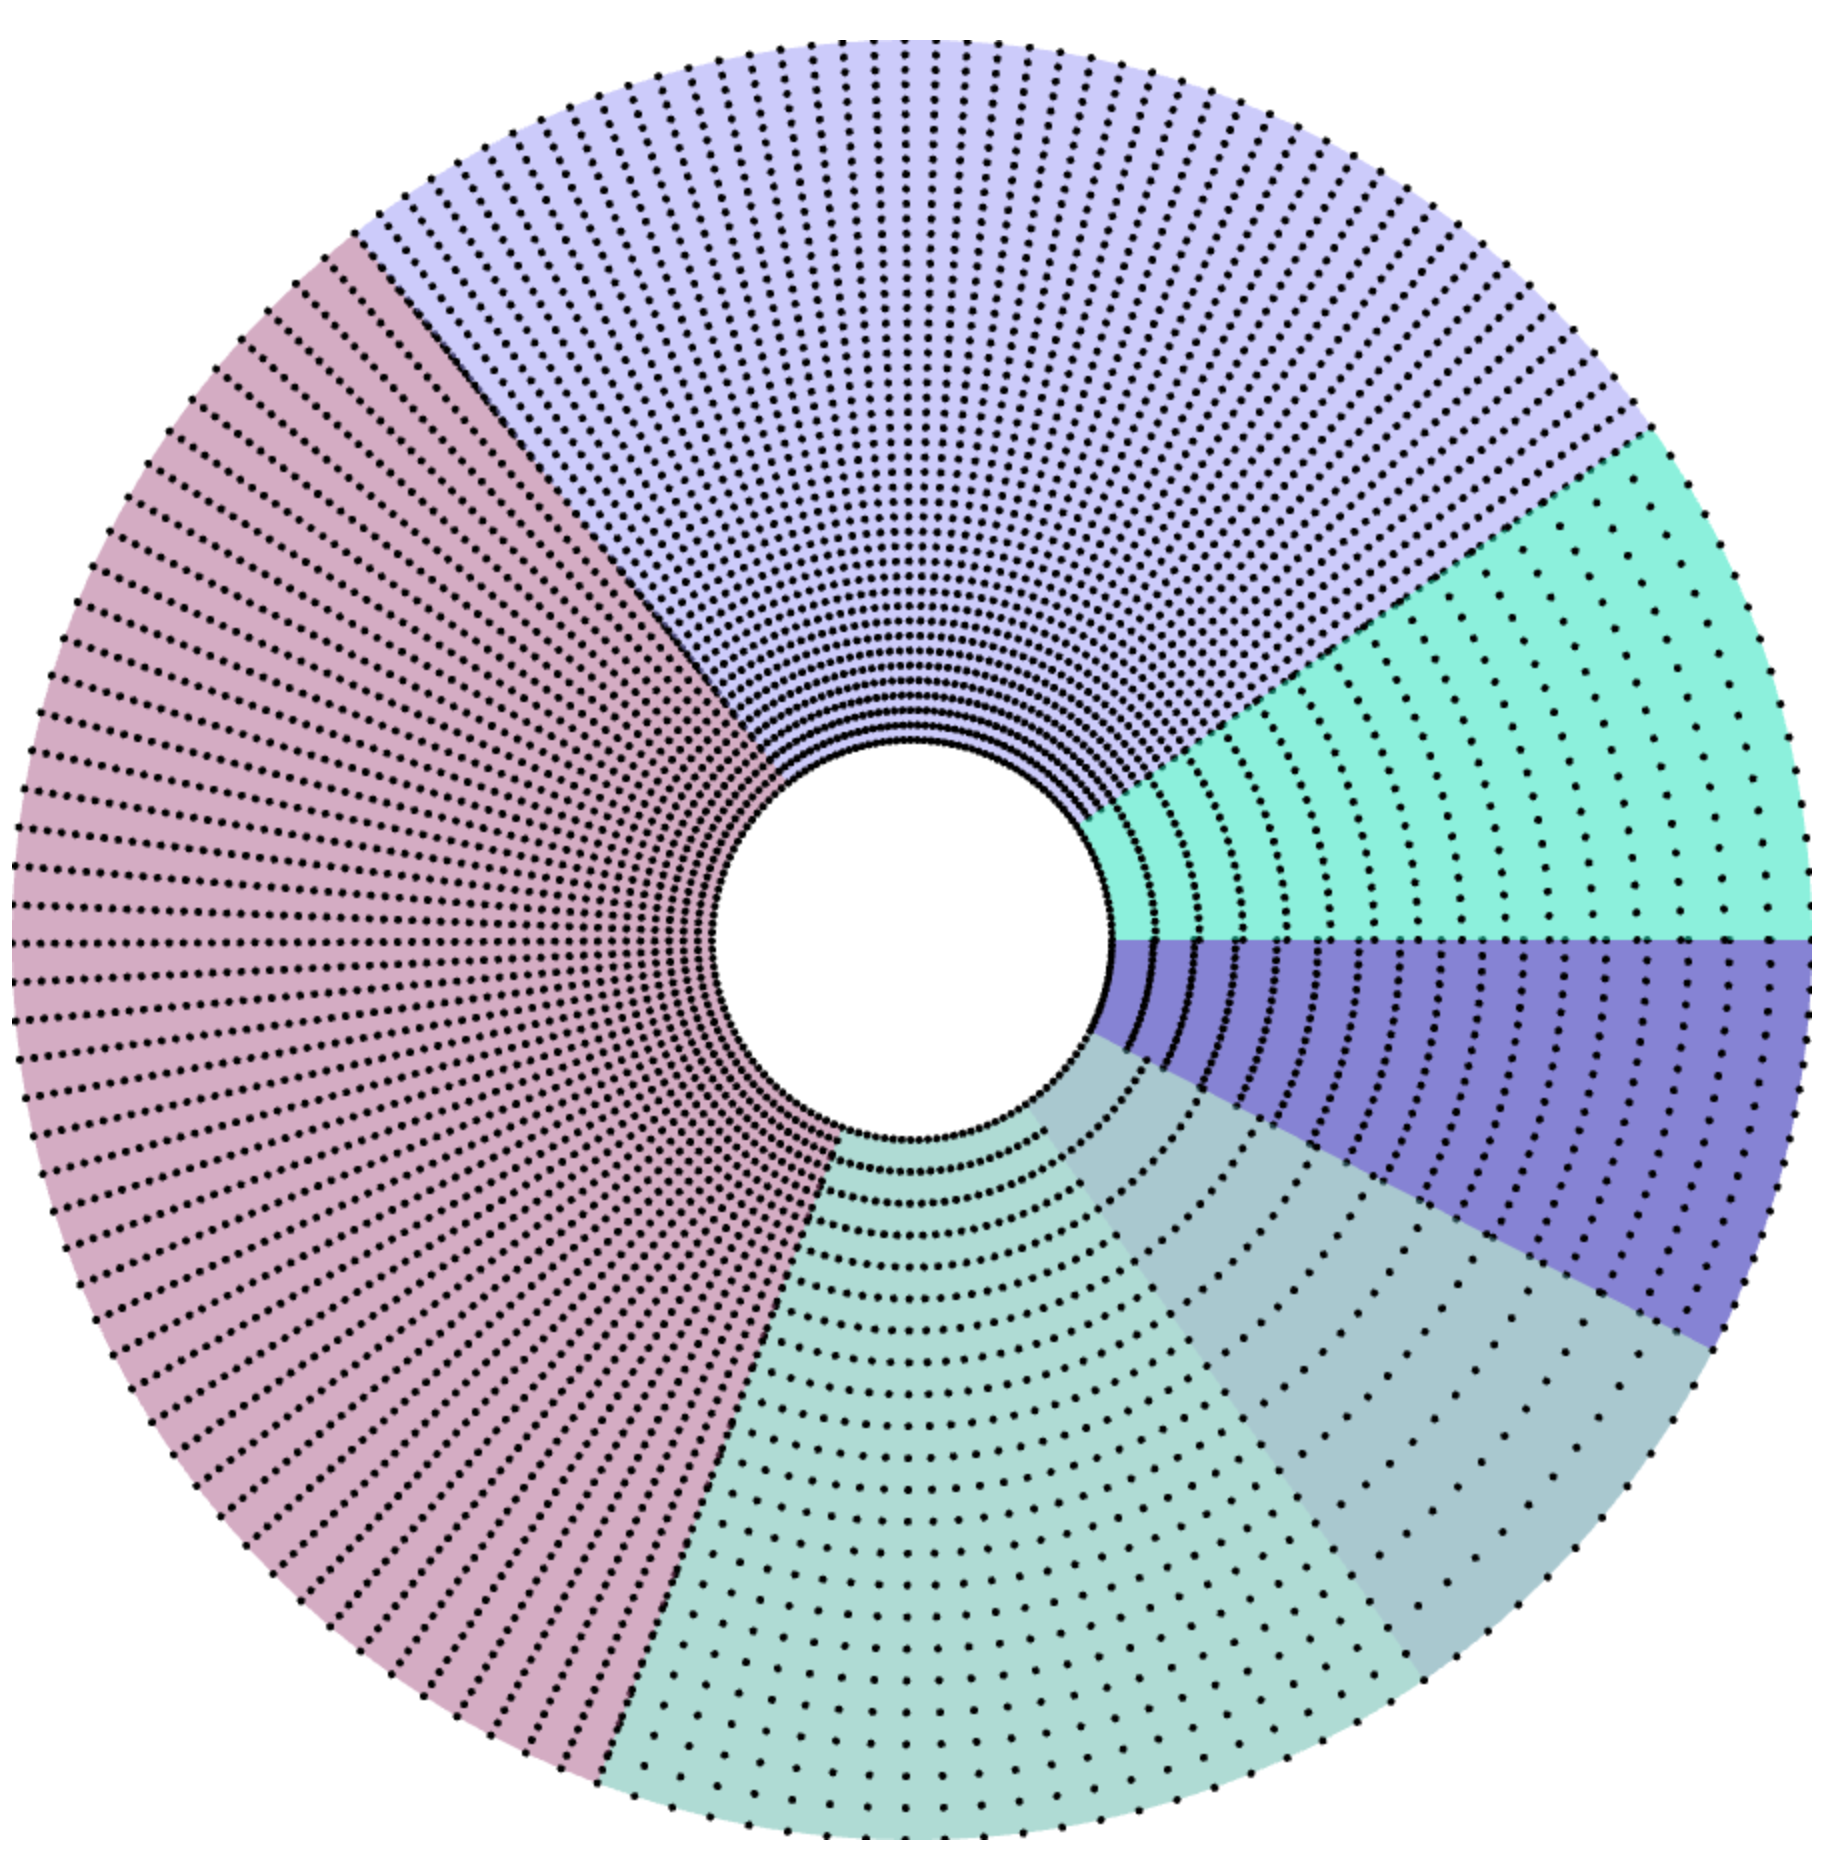 Donut divided in sections with points representing the grid of each sections